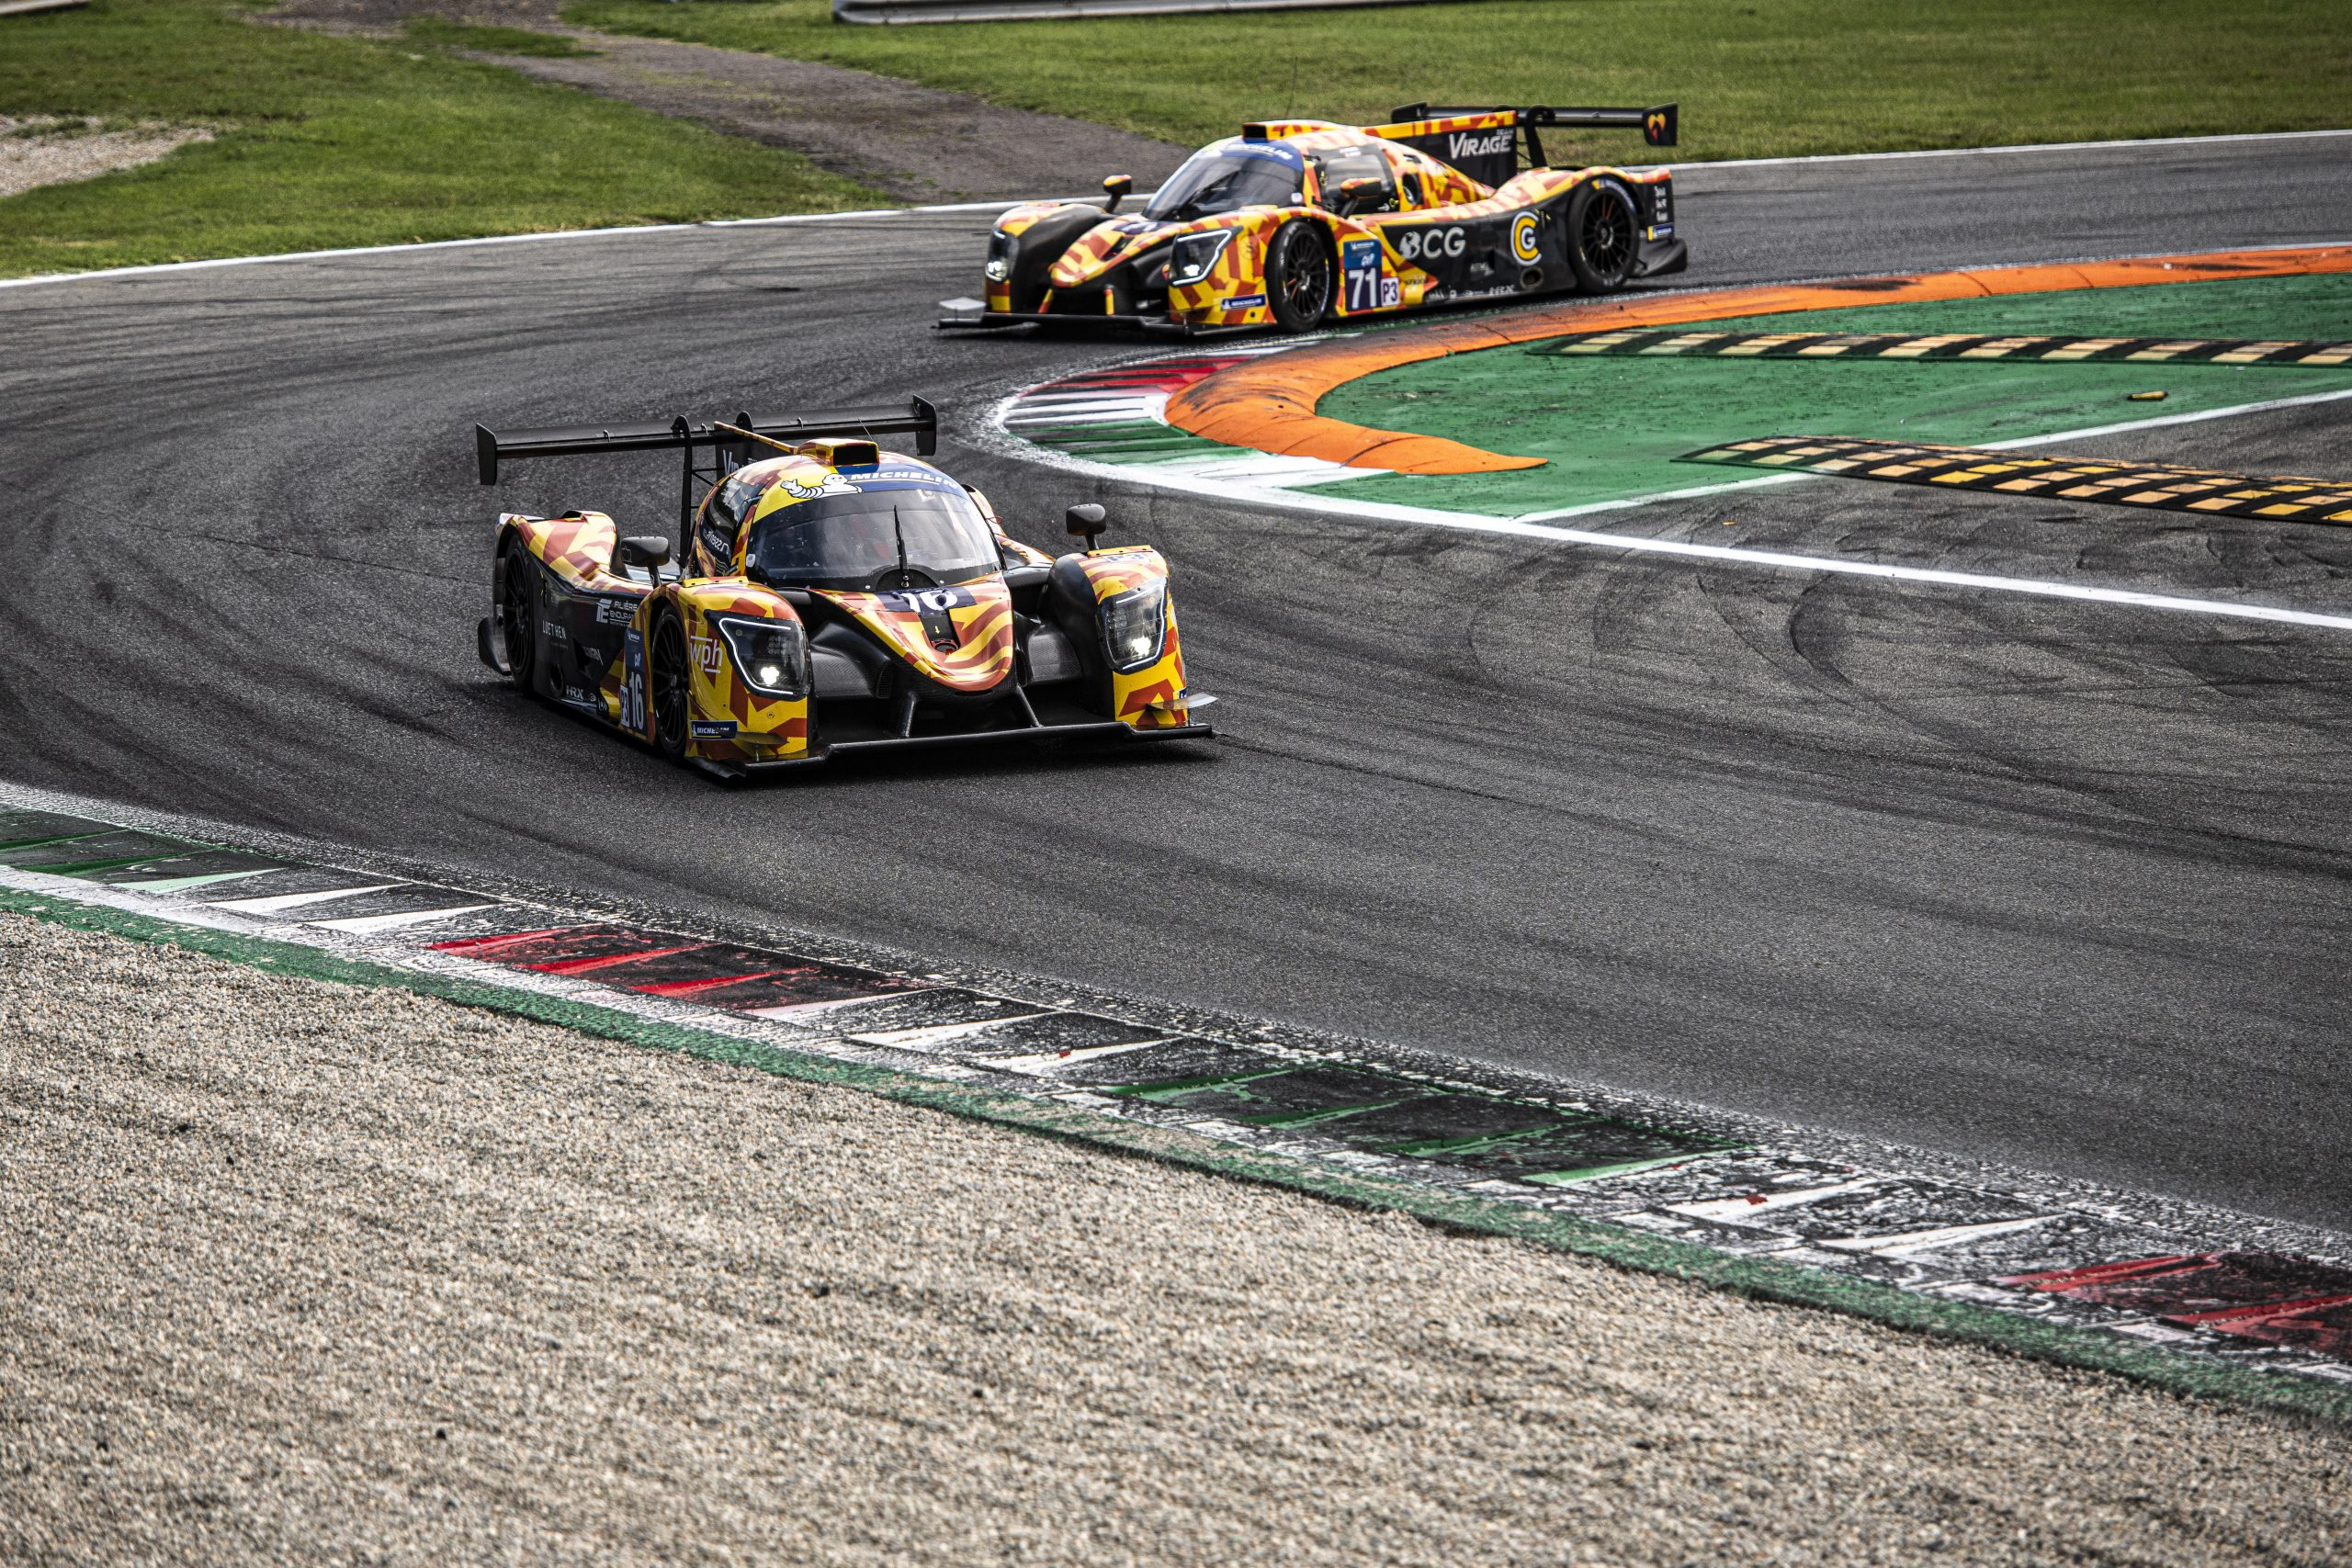 Challenging Le Mans Cup race in Monza for Team Virage